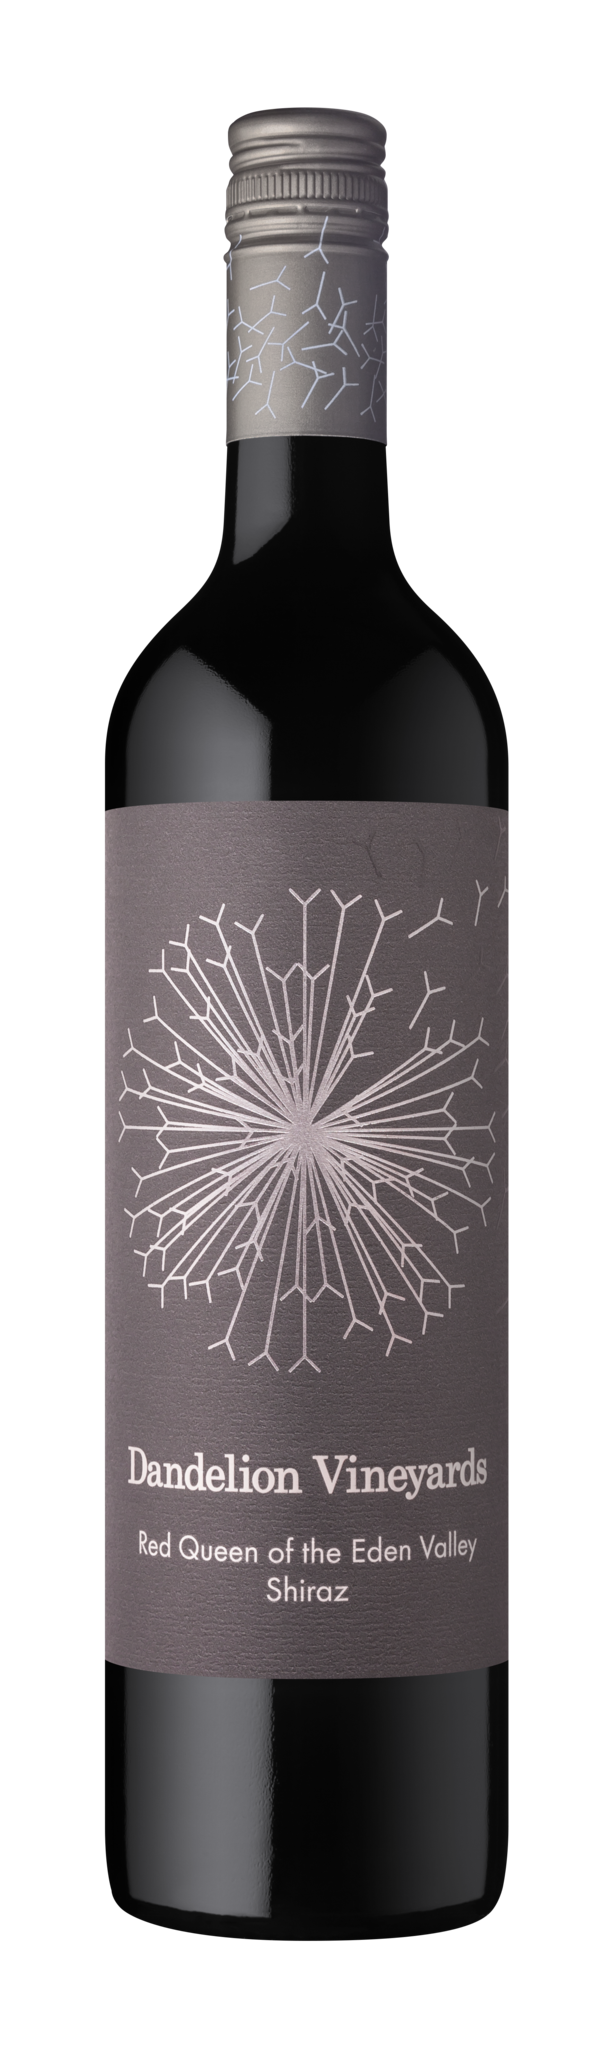 Red Queen of the Eden Valley Shiraz 2015